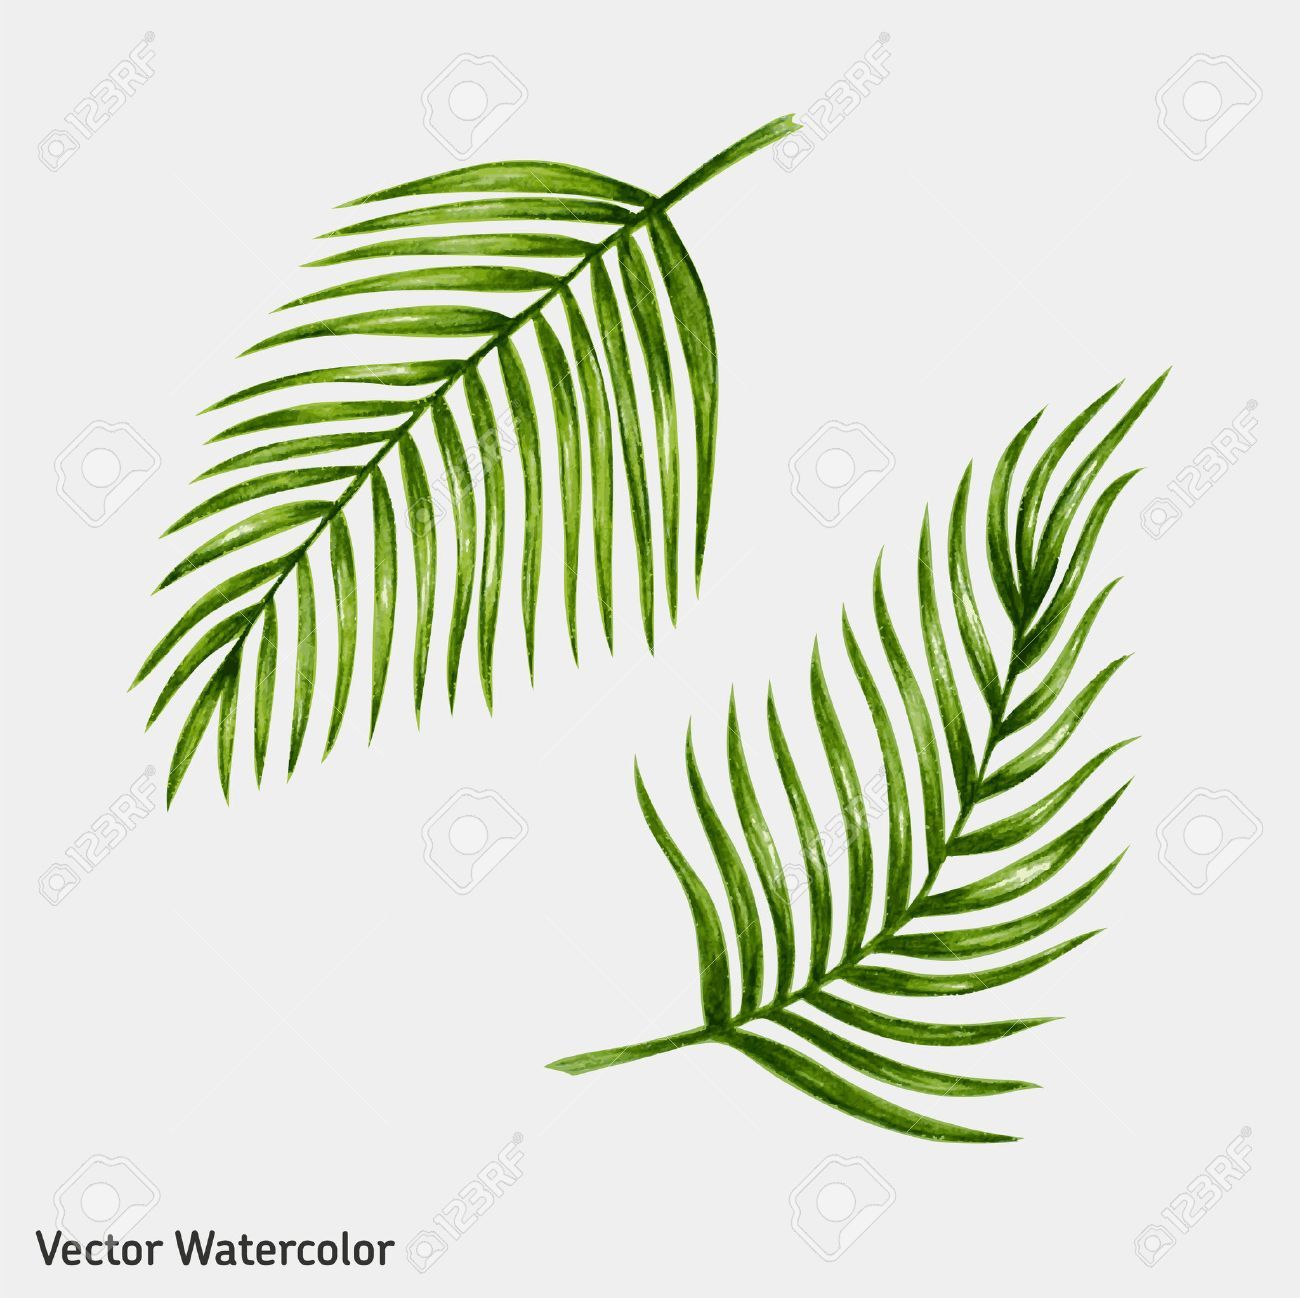 Watercolor Tropical Palm Leaves Vector Illustration Ad Palm